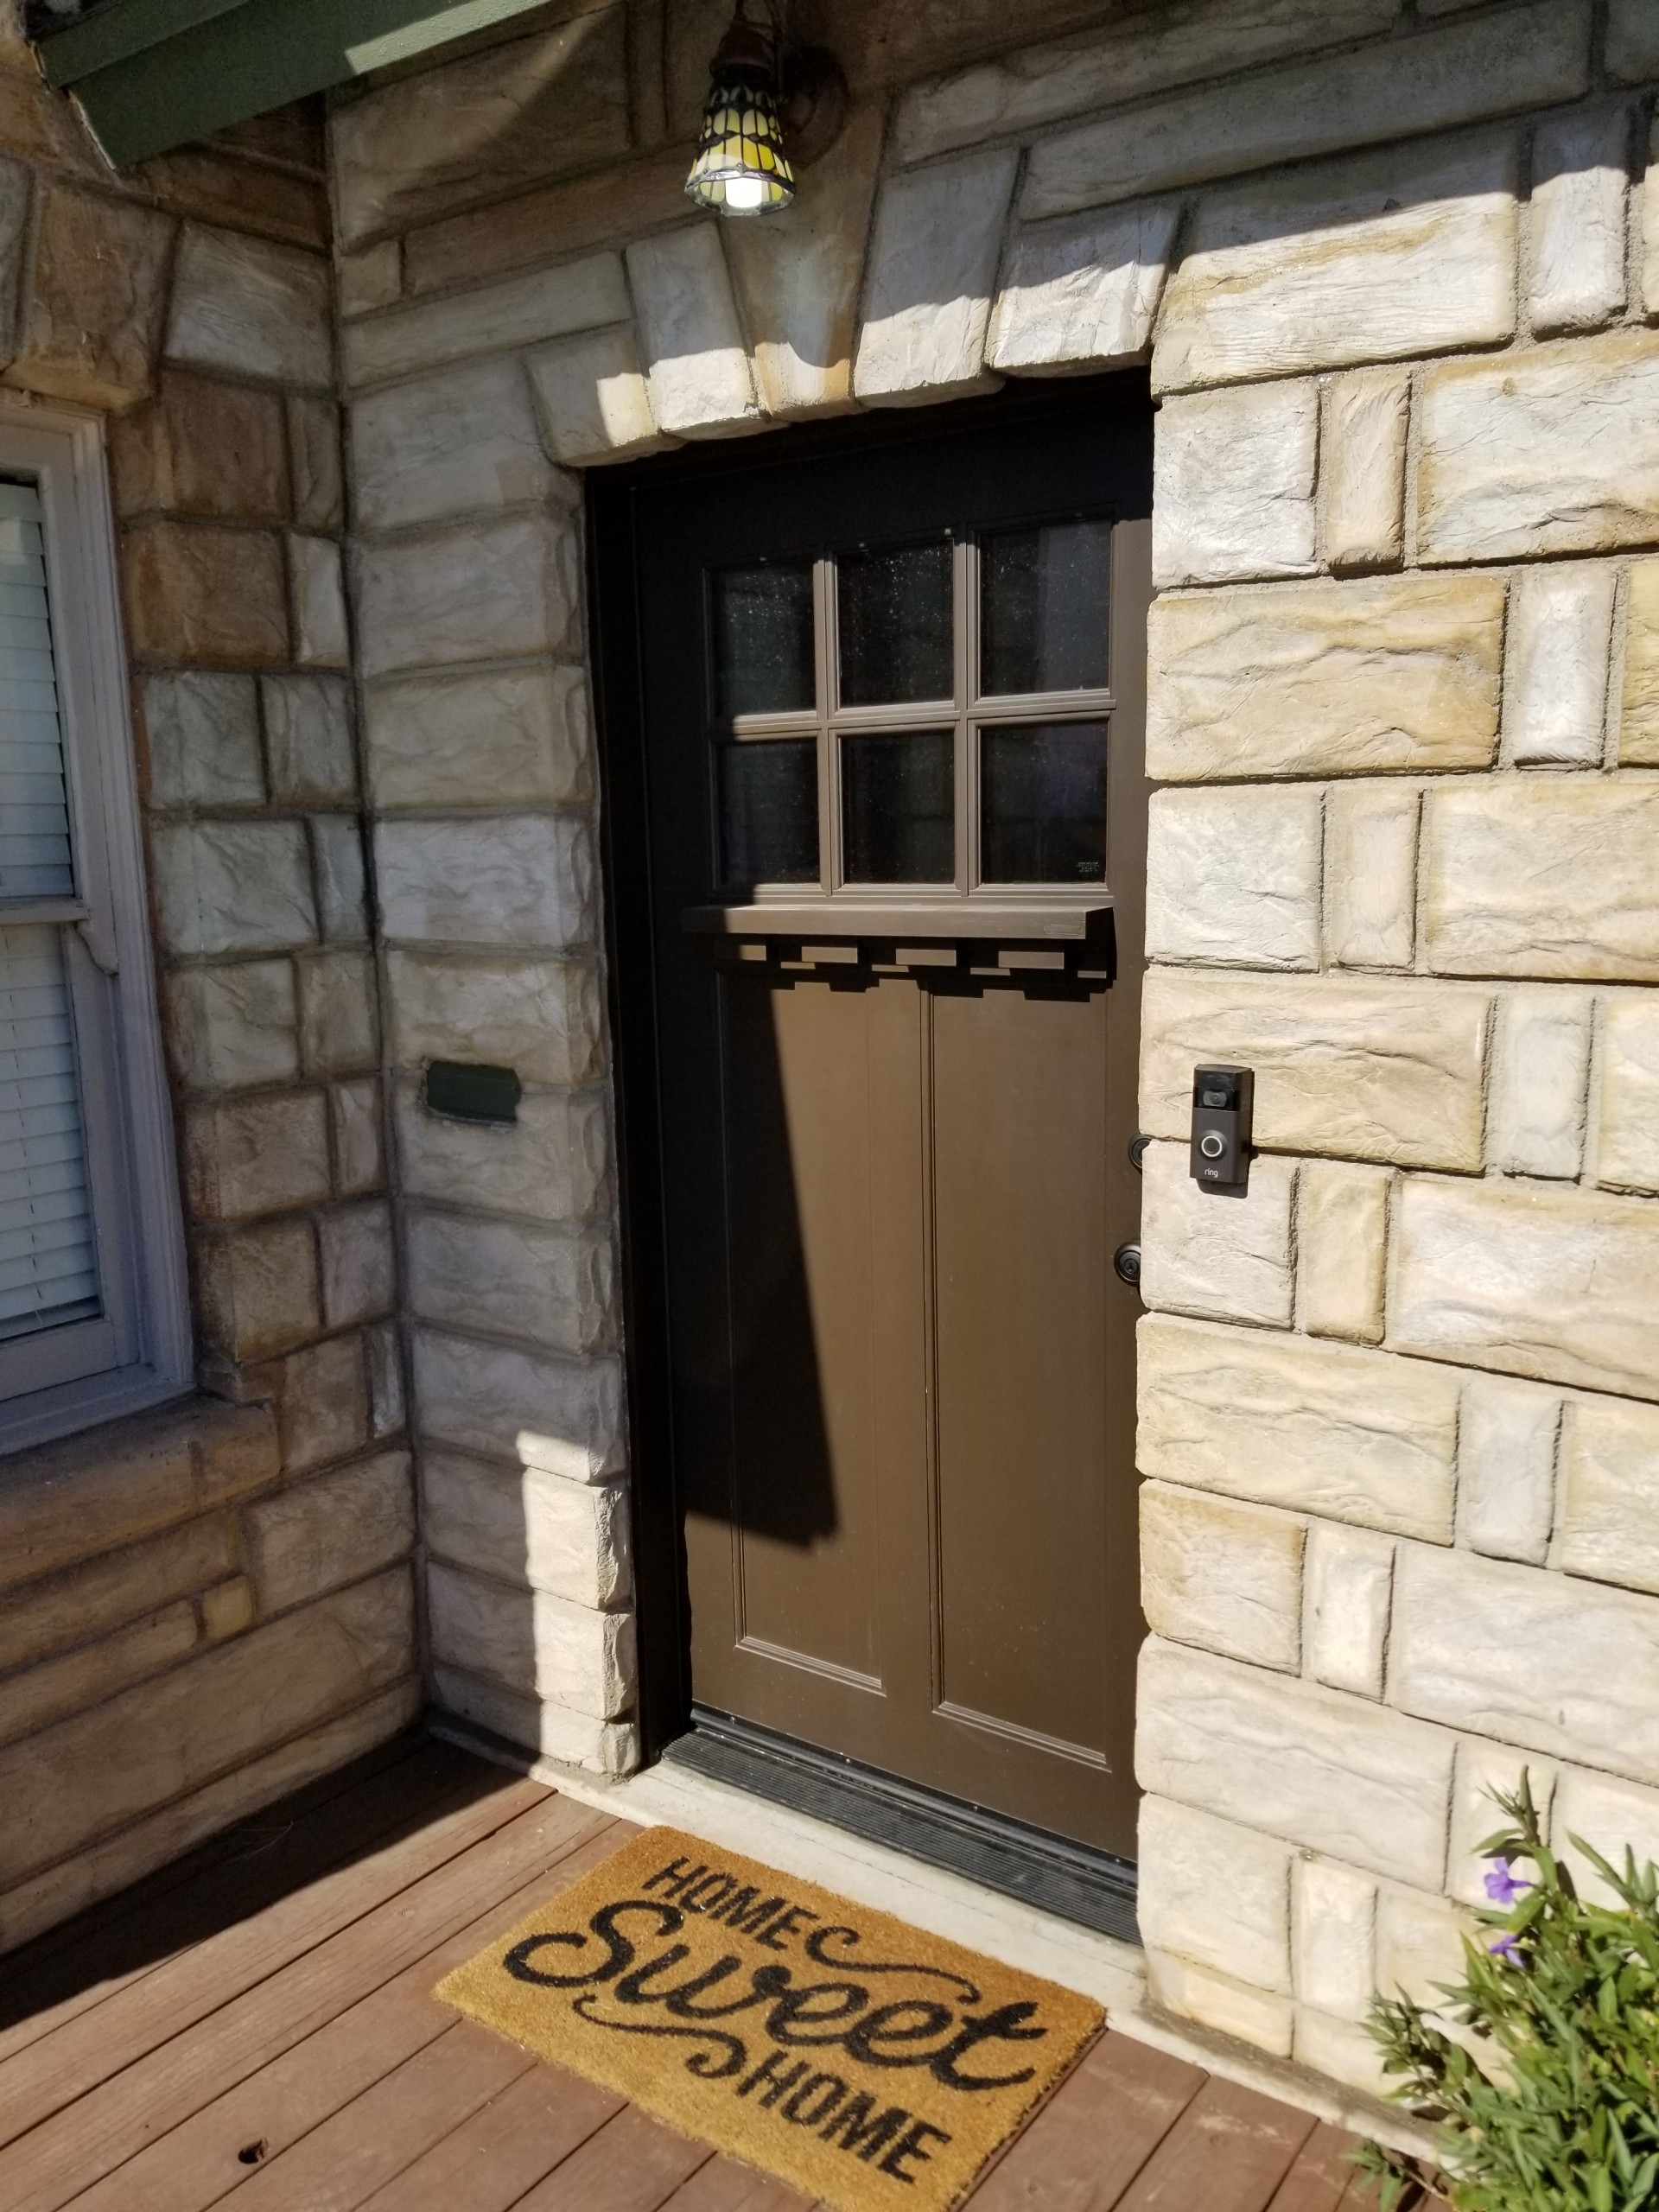 Arizona Window and Door in Scottsdale and Tucson showing custom wood door with windows